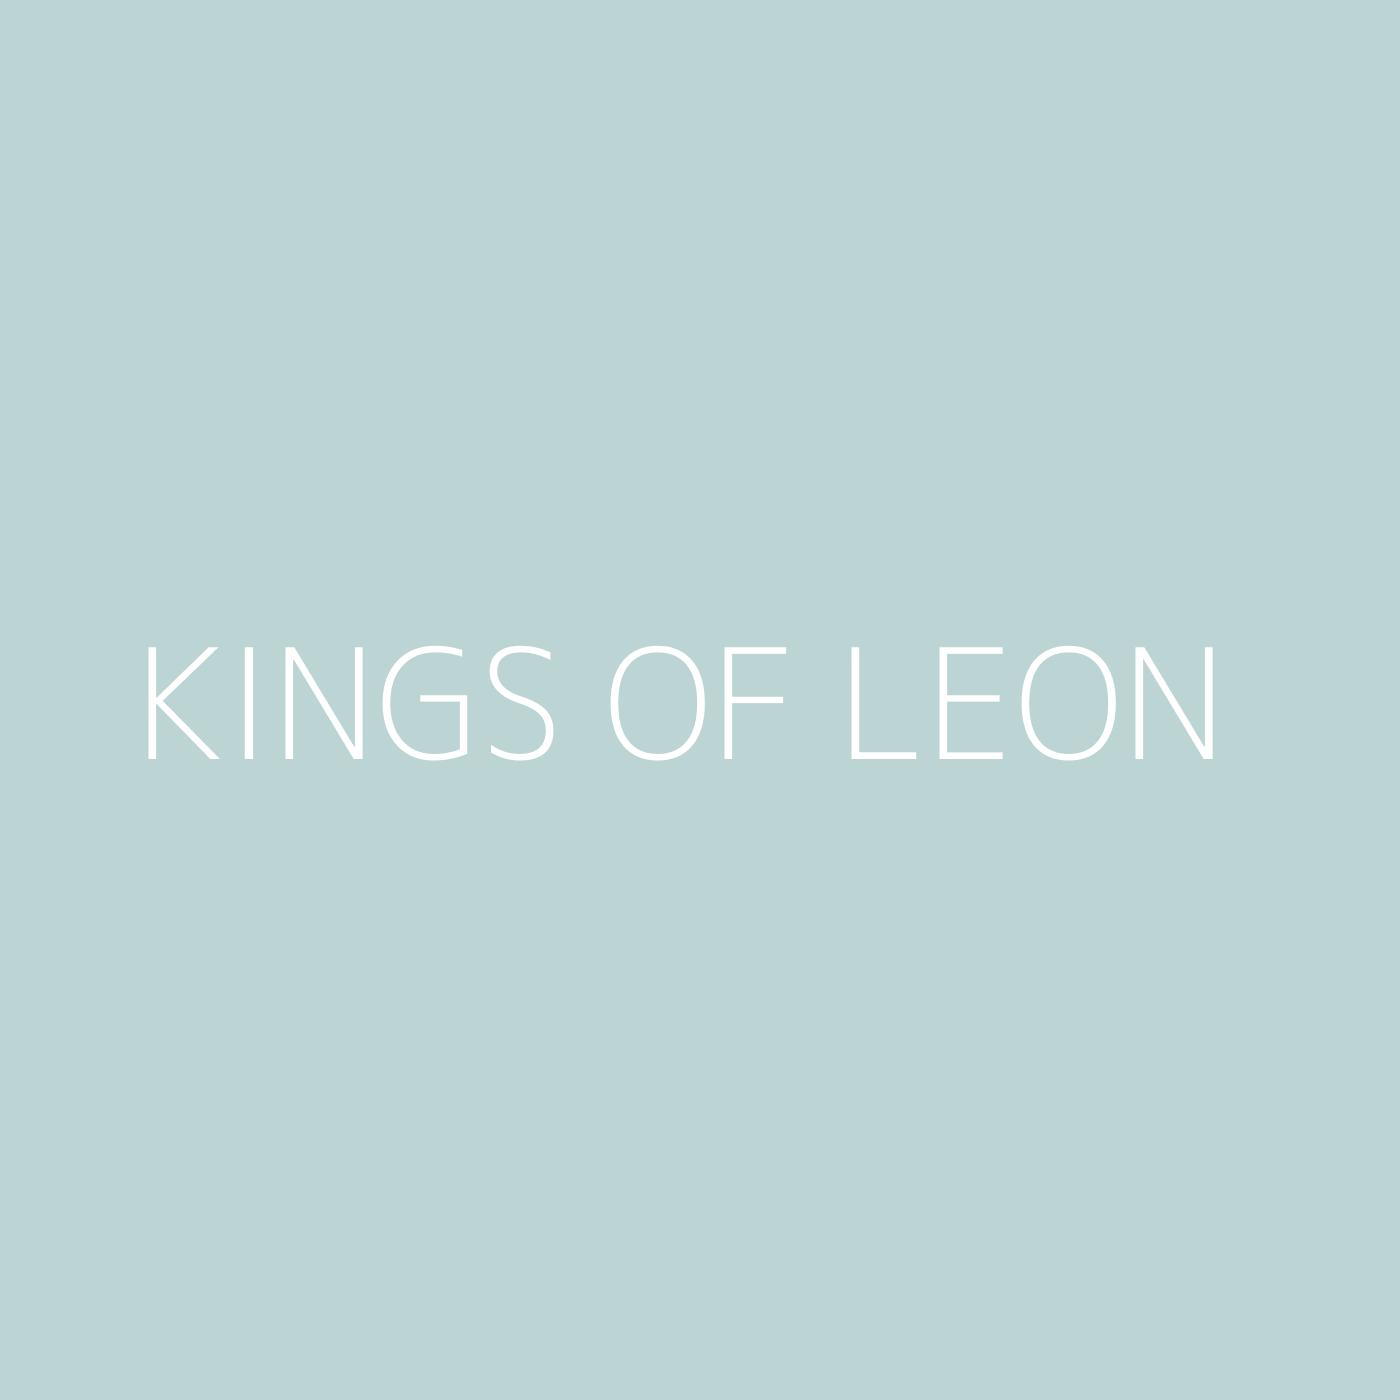 Kings of Leon Playlist Artwork